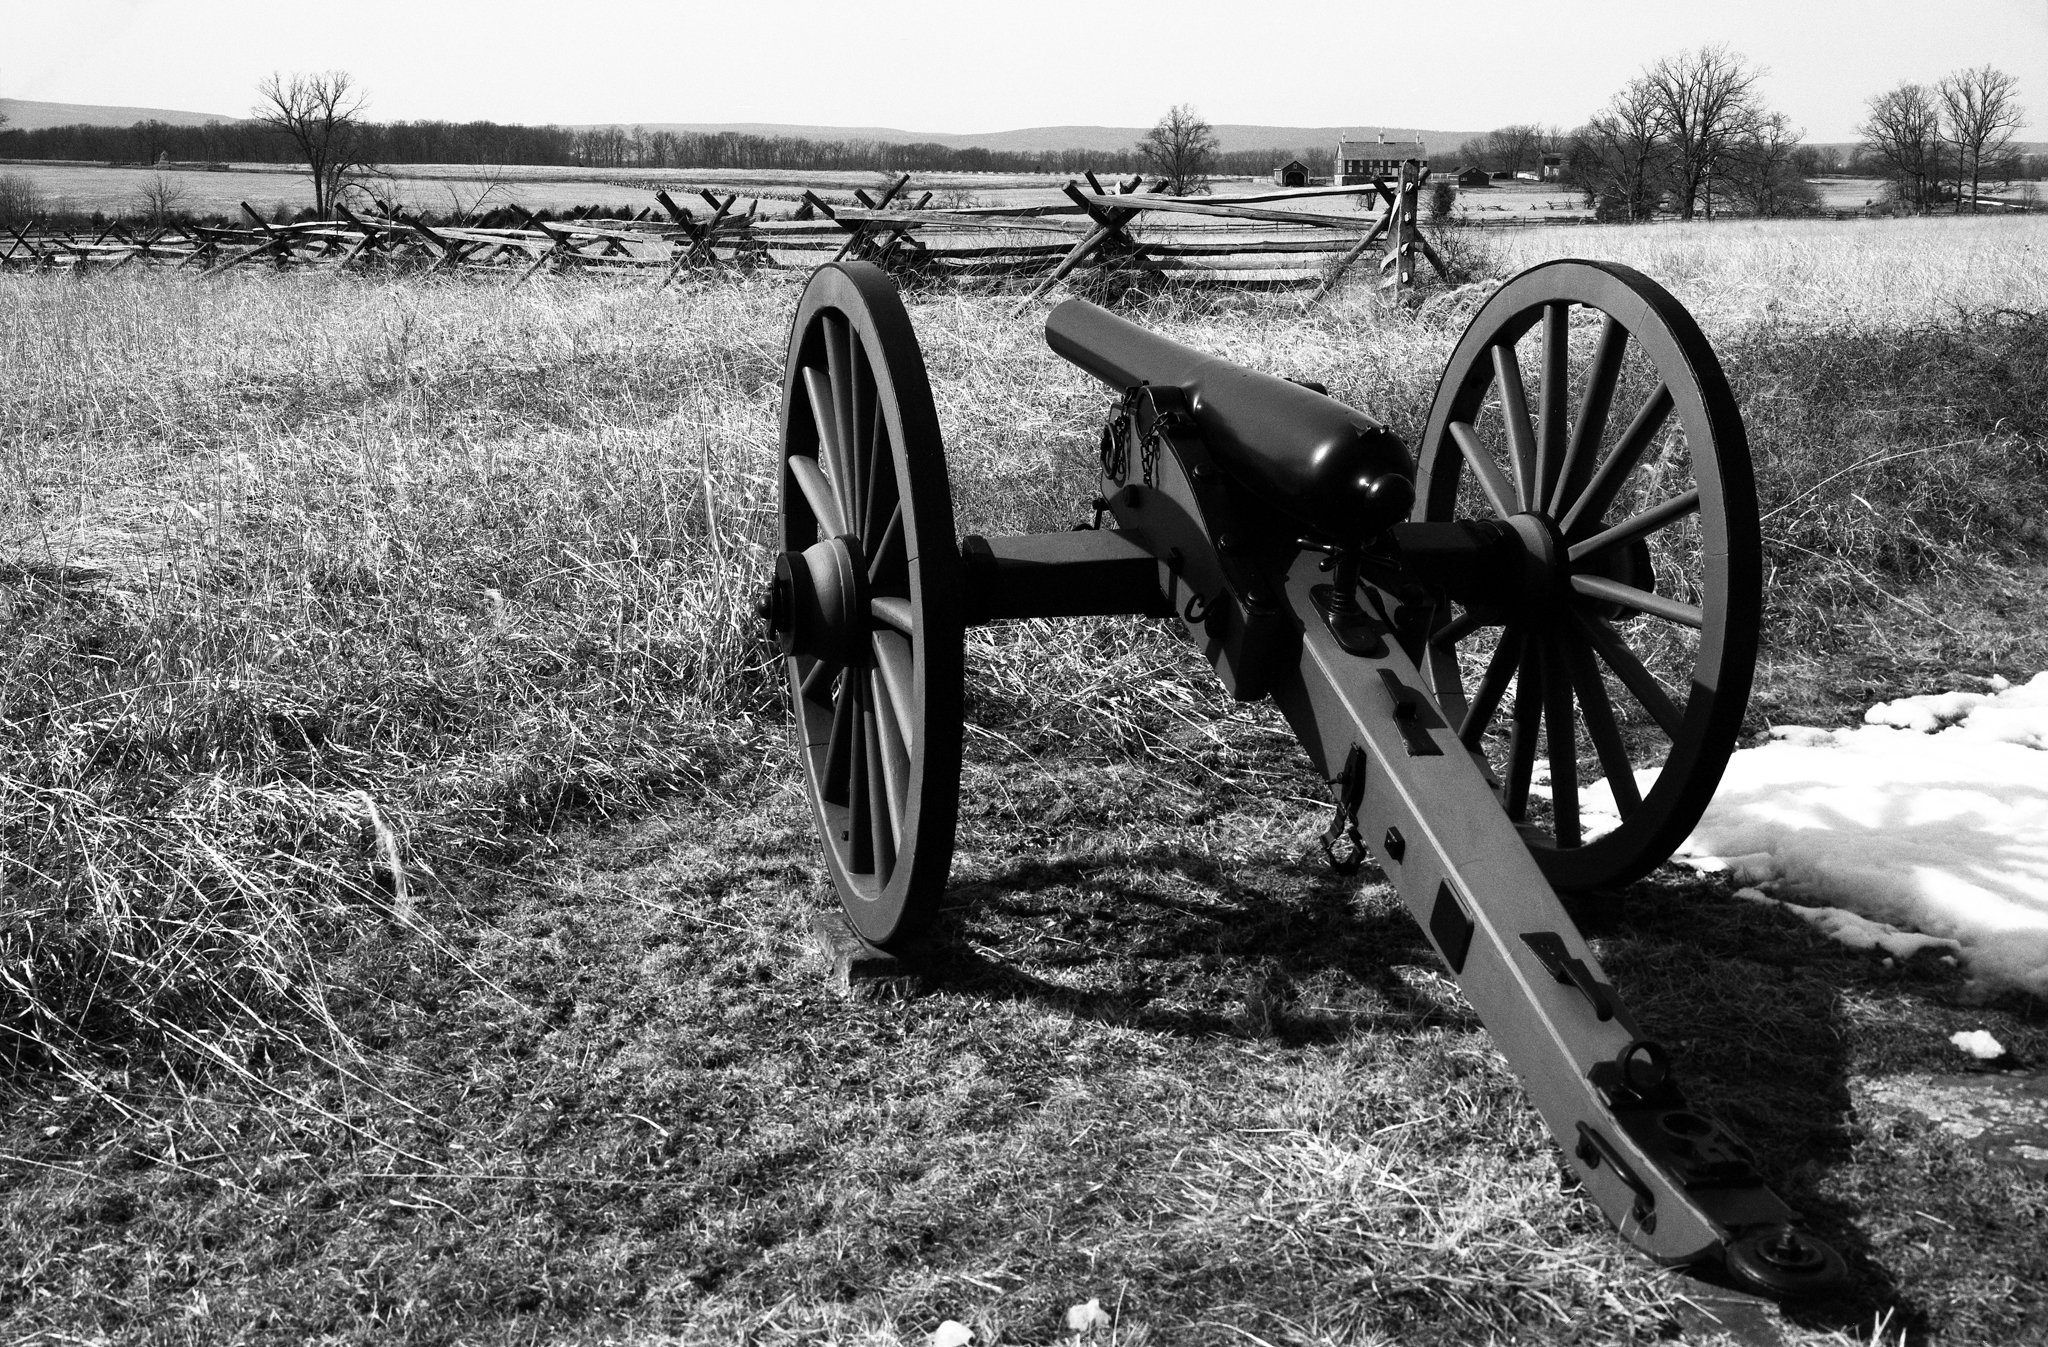 4x5_for_365_project_075_Gettysburg_2014-Canon.jpg